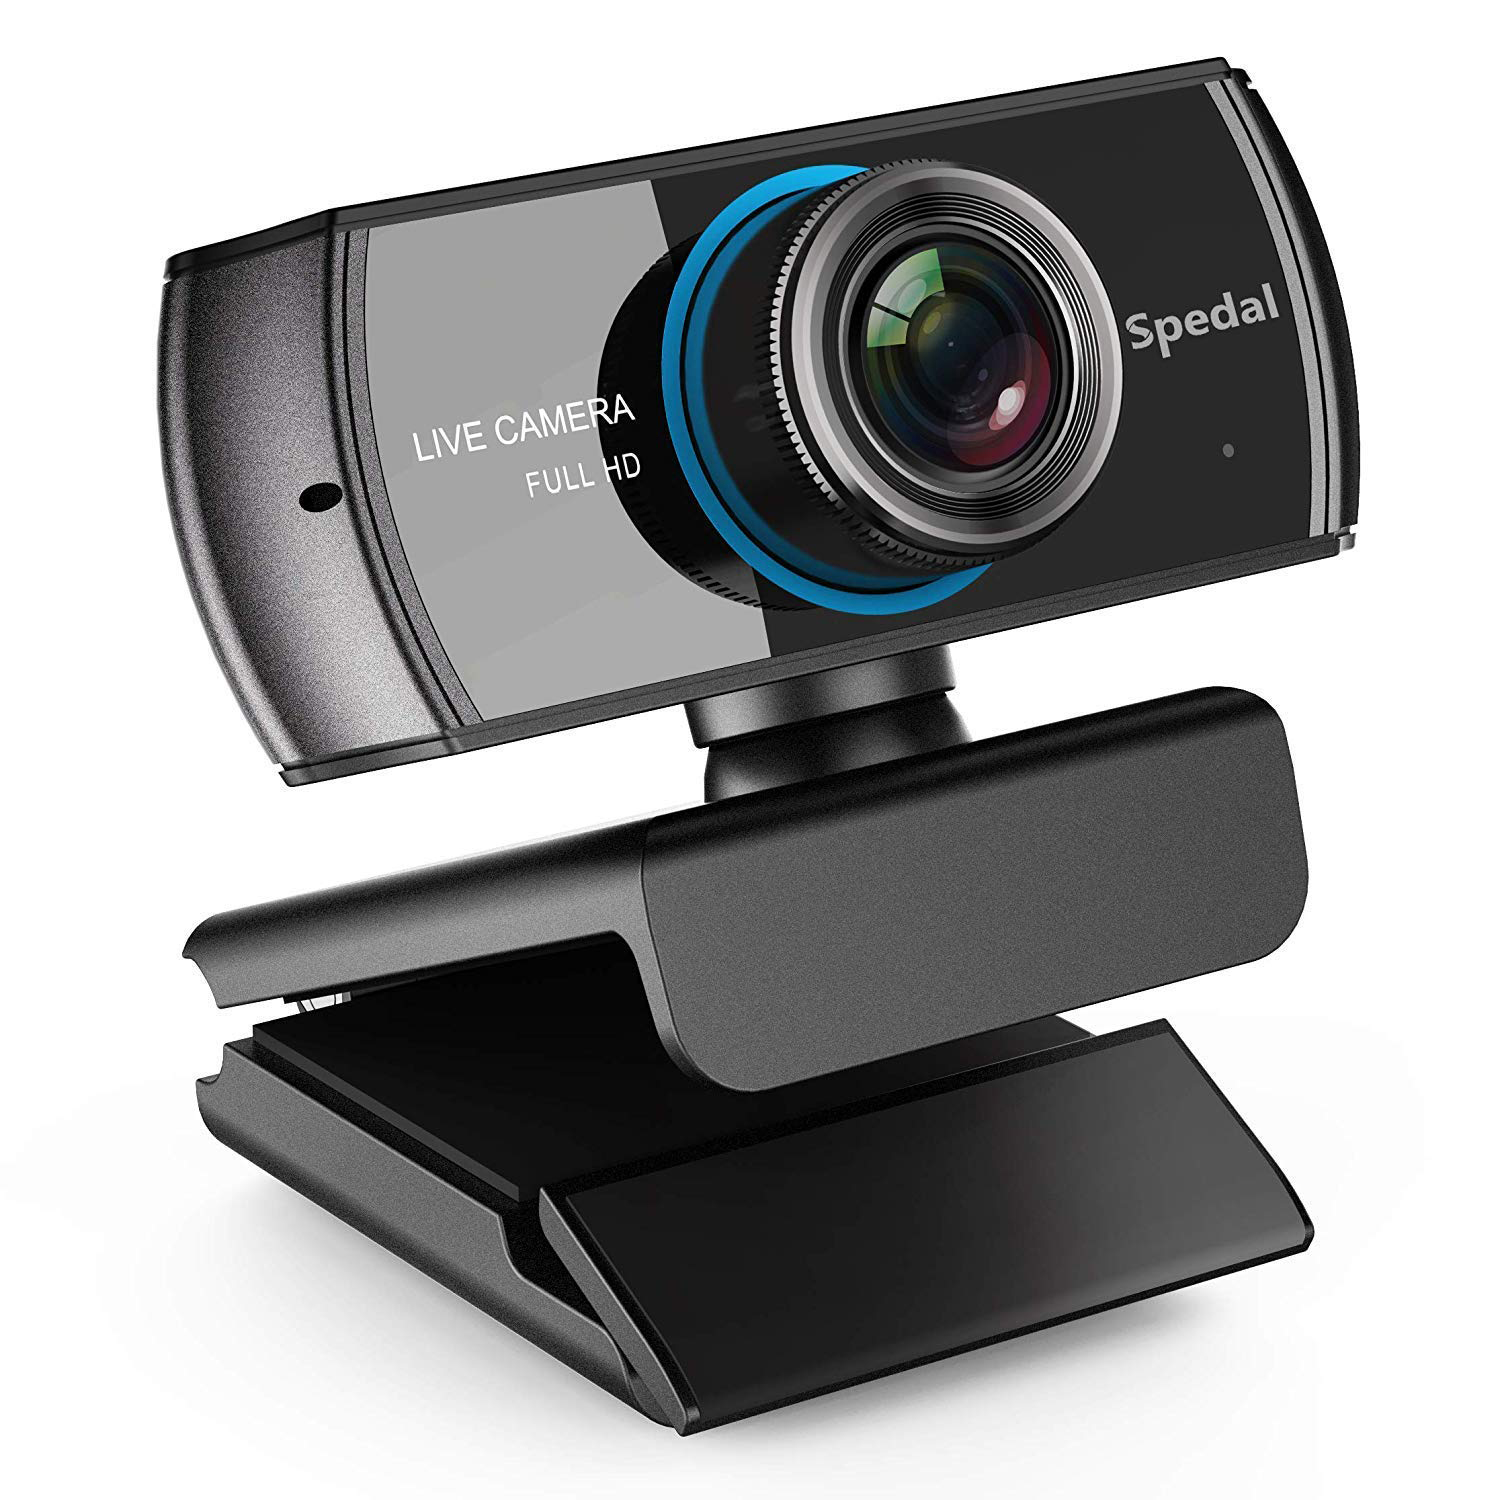 Full HD Webcam 1536p, Beauty Live Streaming Webcam, Computer Laptop Camera for OBS Xbox XSplit Skype Facebook, Compatible for Mac OS Windows 10/8/7